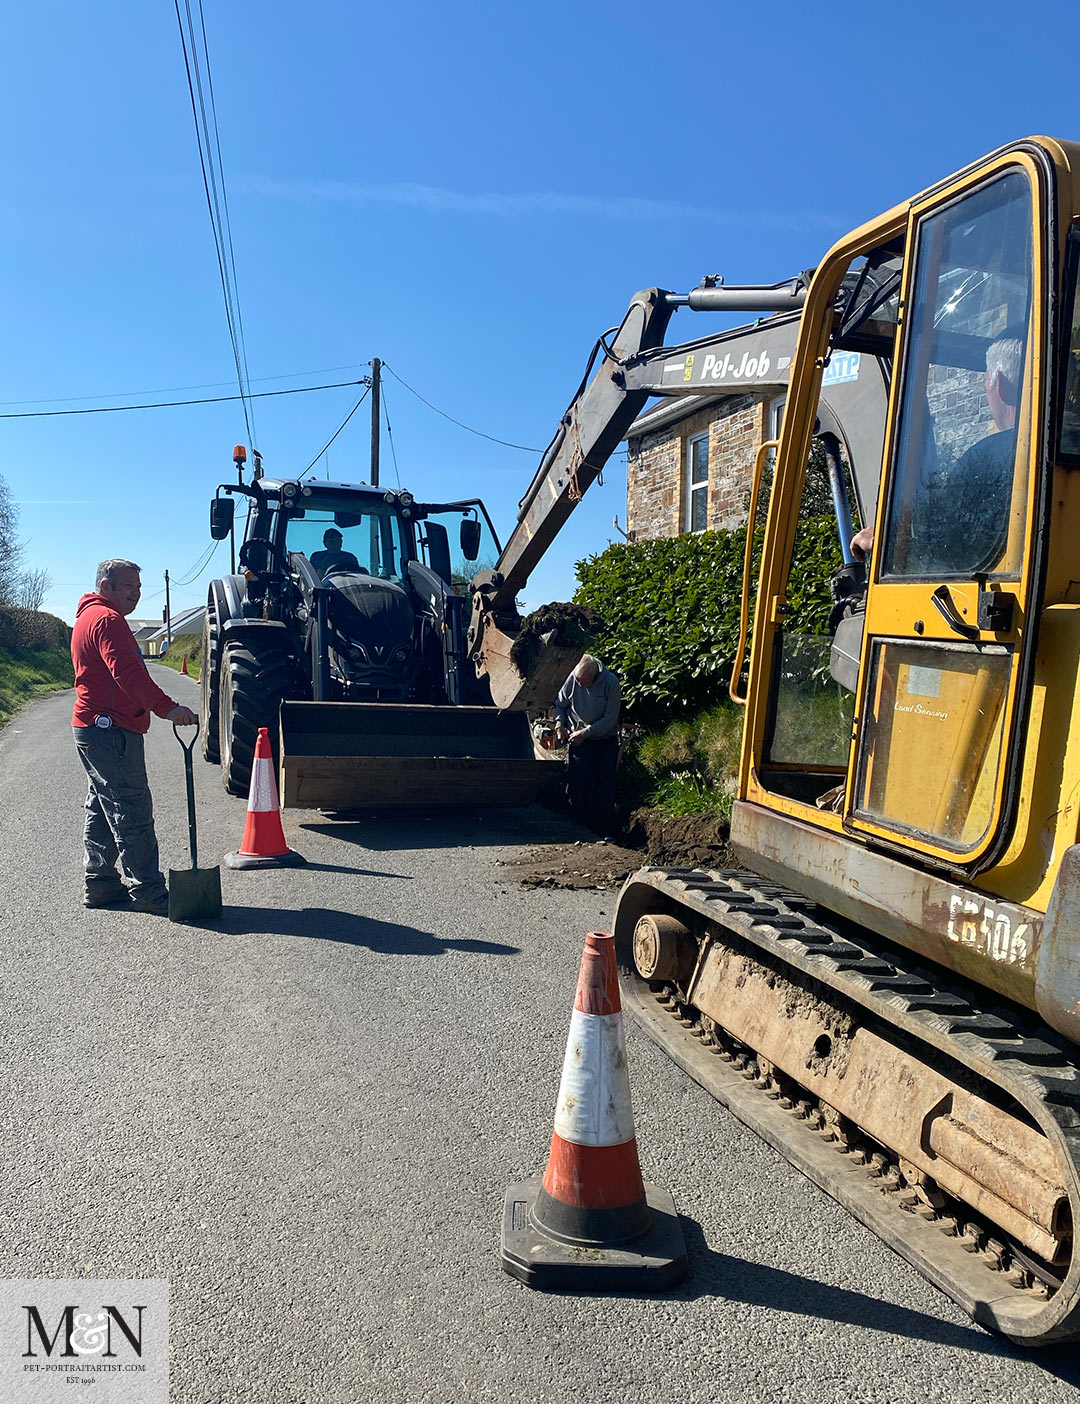 The digger arrived! Melanie's April Monthly News